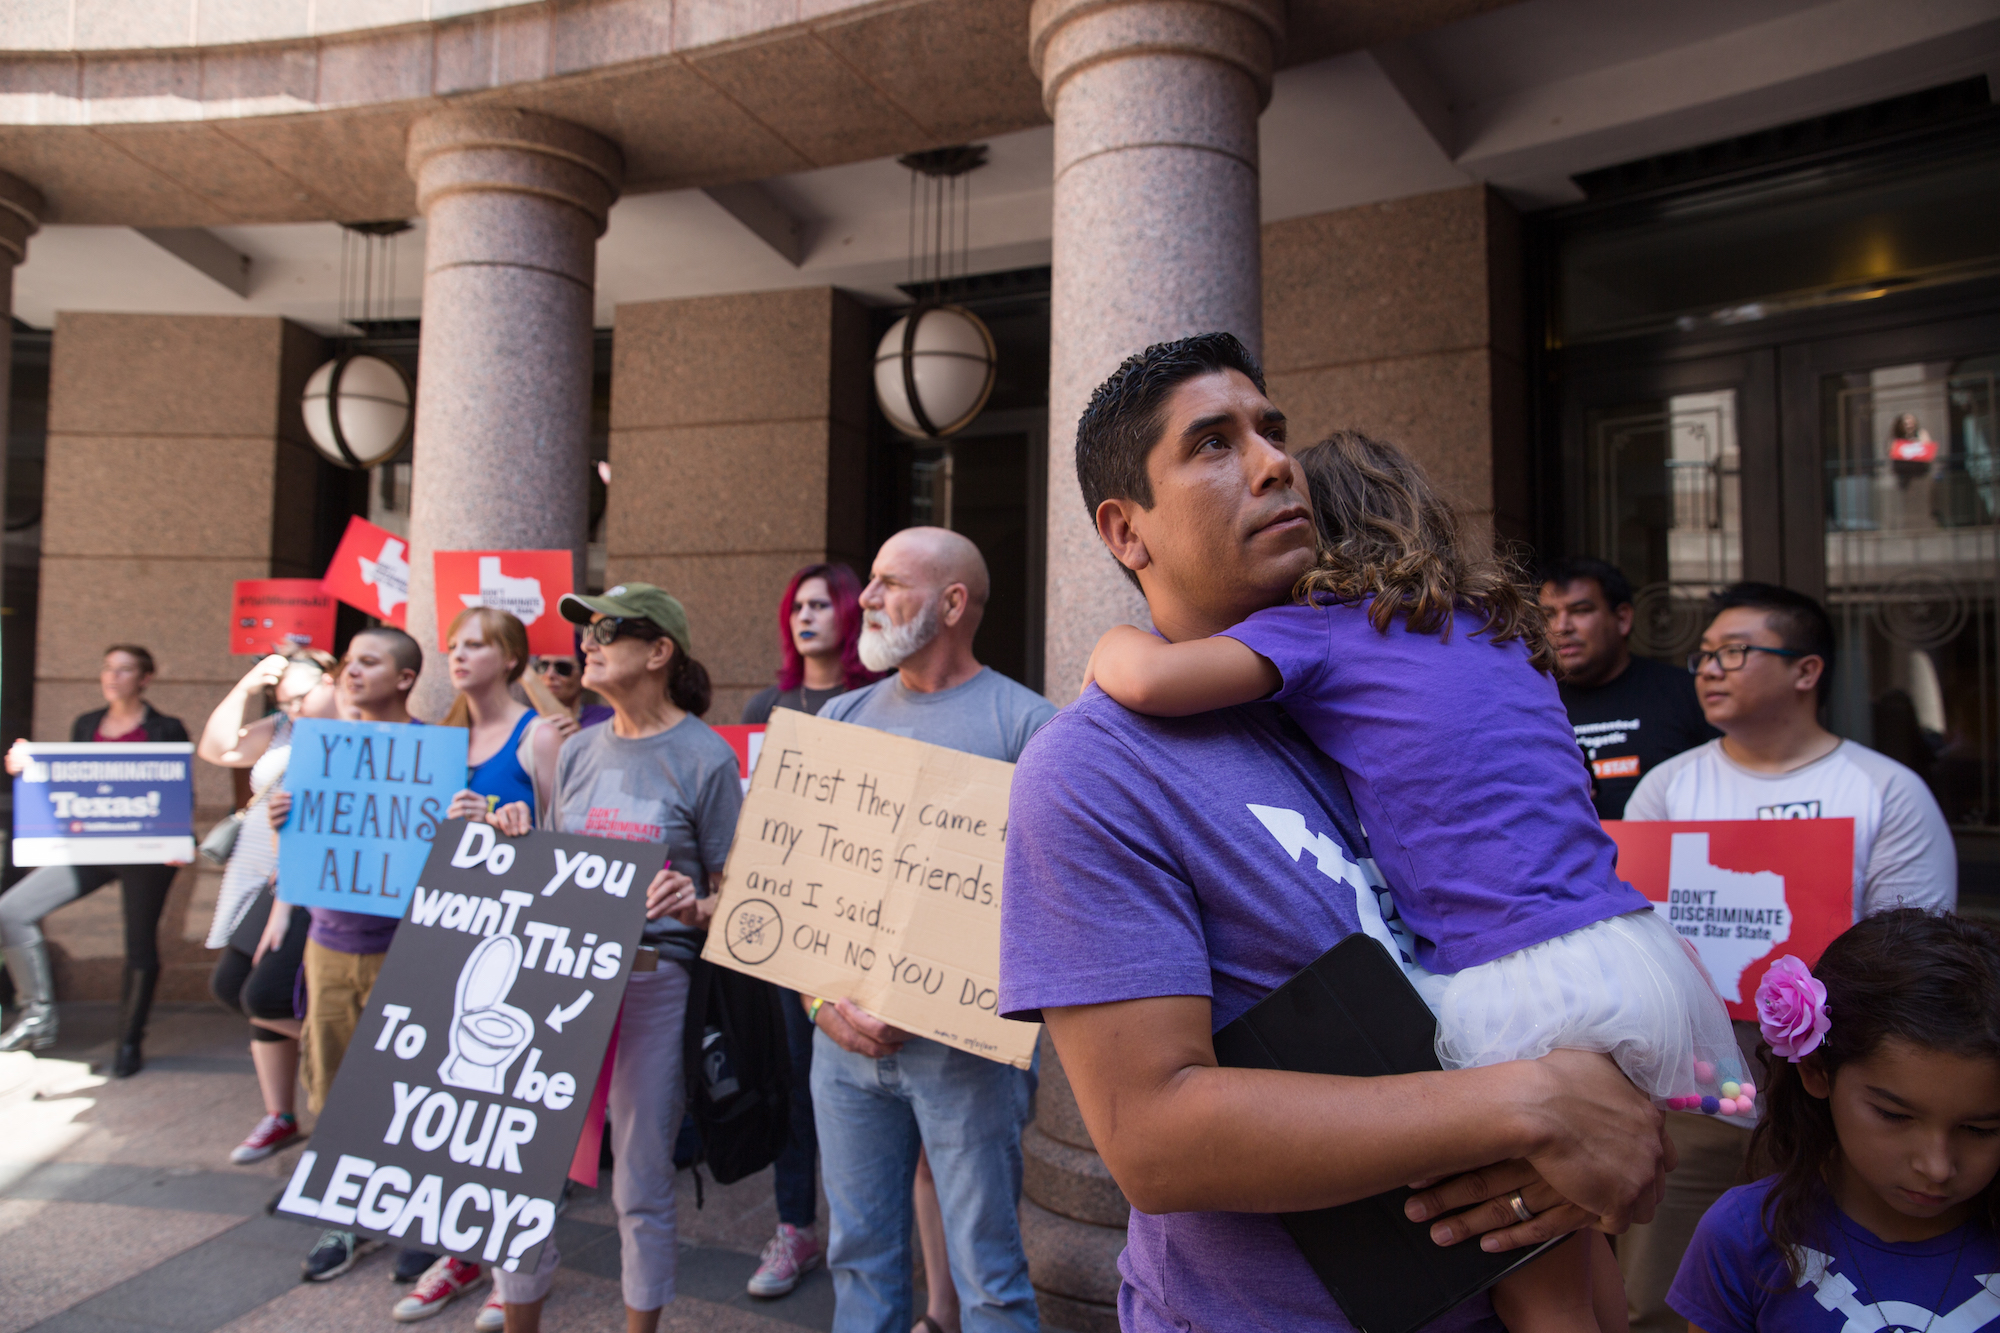 Frank Gonzales holds his daughter after speaking at a rally to denounce bathroom restrictions for transgender Texans on July 21, 2017.